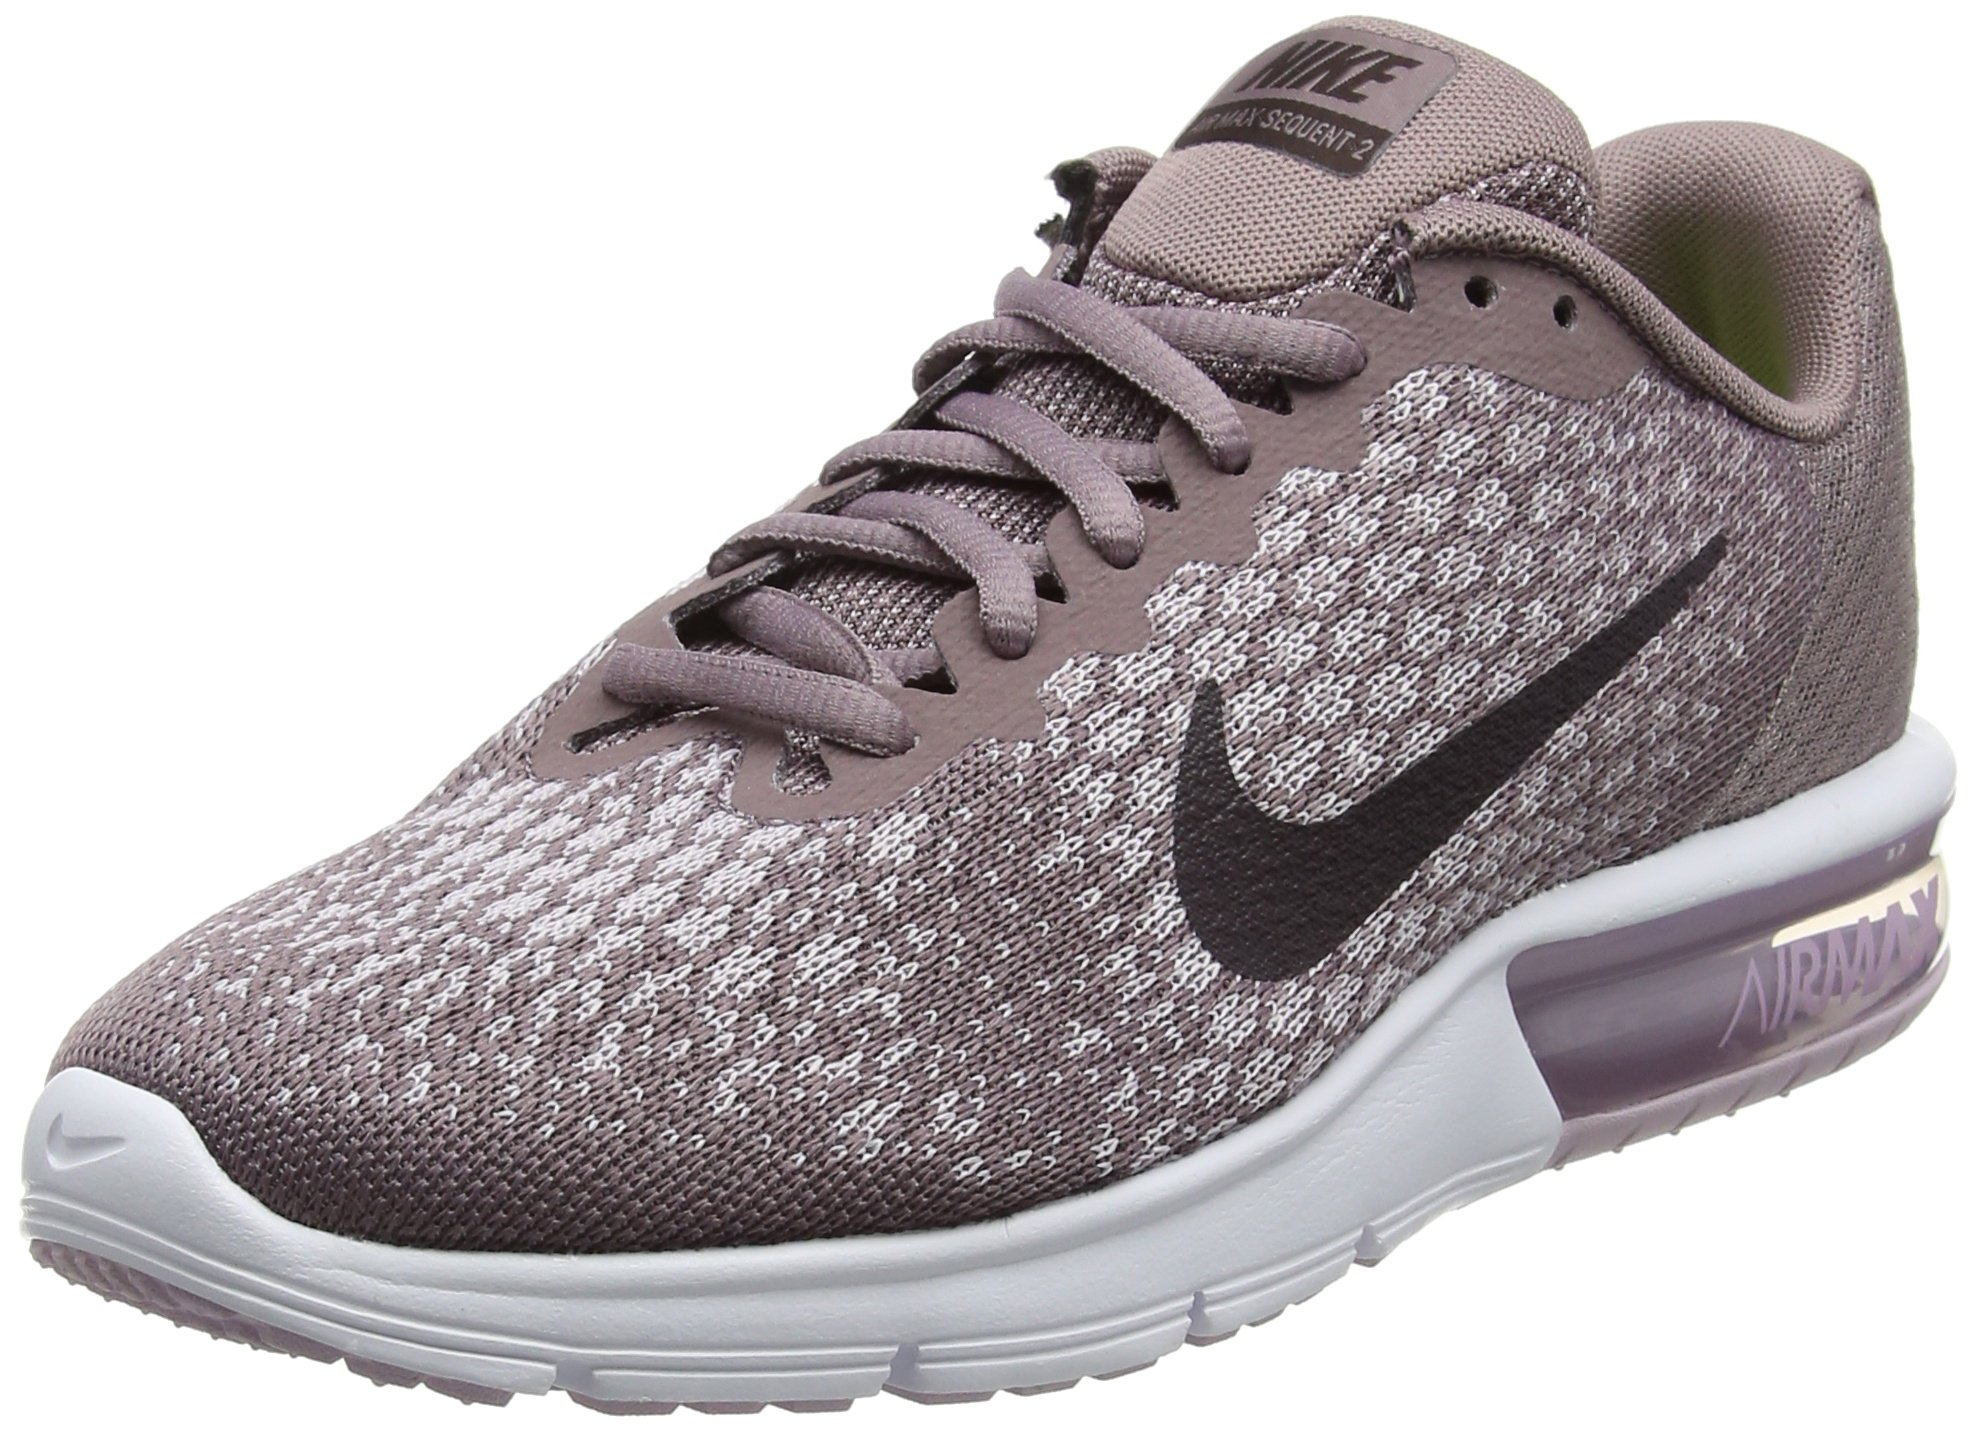 Nike Air Max Sequent 2 Womens Style: 852465-200 Size: 7 by NIKE